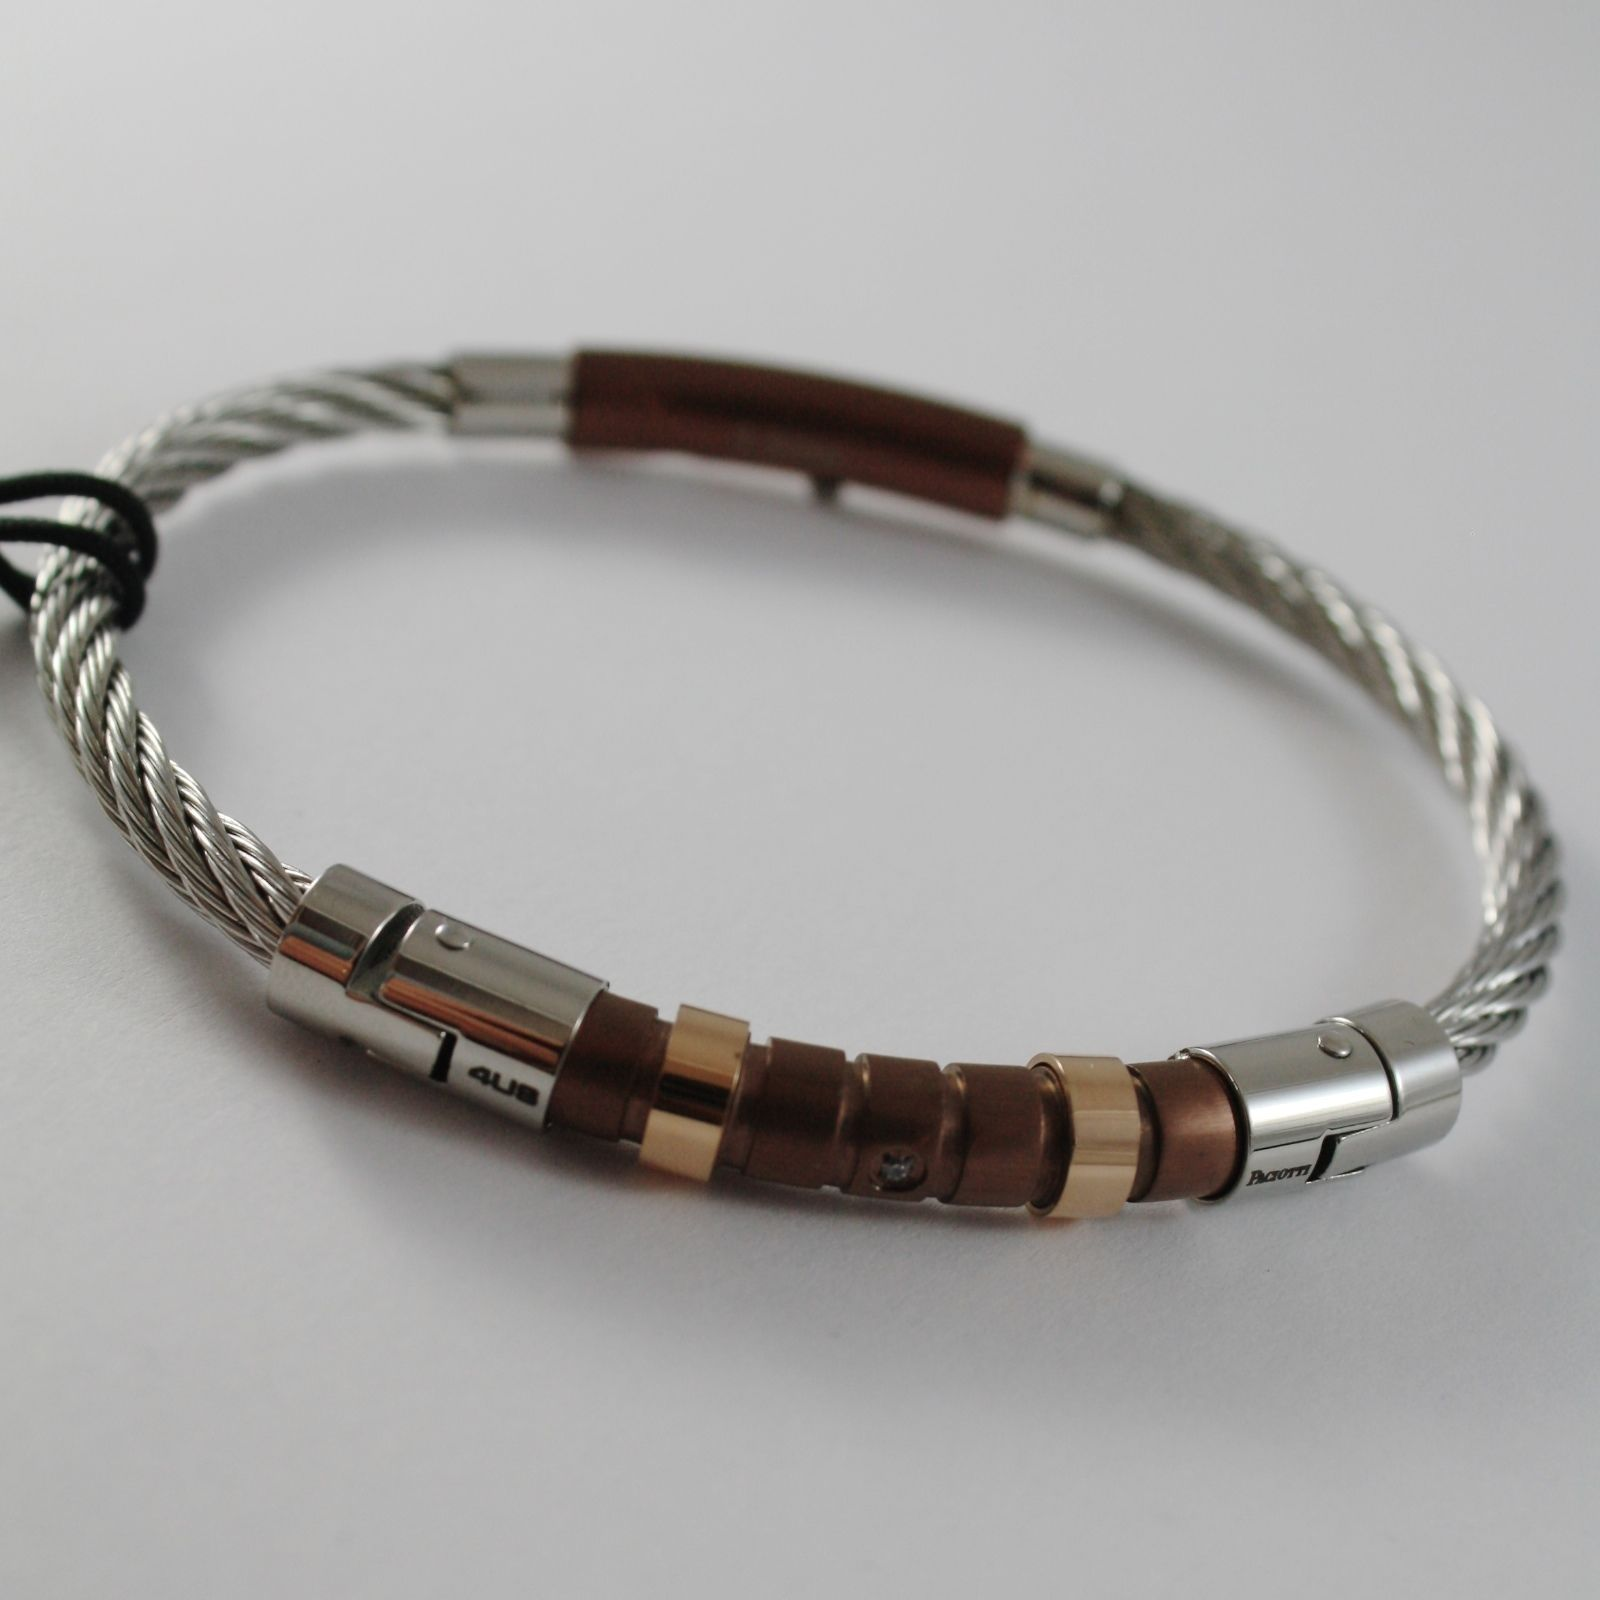 STAINLESS BROWN & ROSE STEEL WIRE CABLE RIGID BRACELET, 4US BY CESARE PACIOTTI